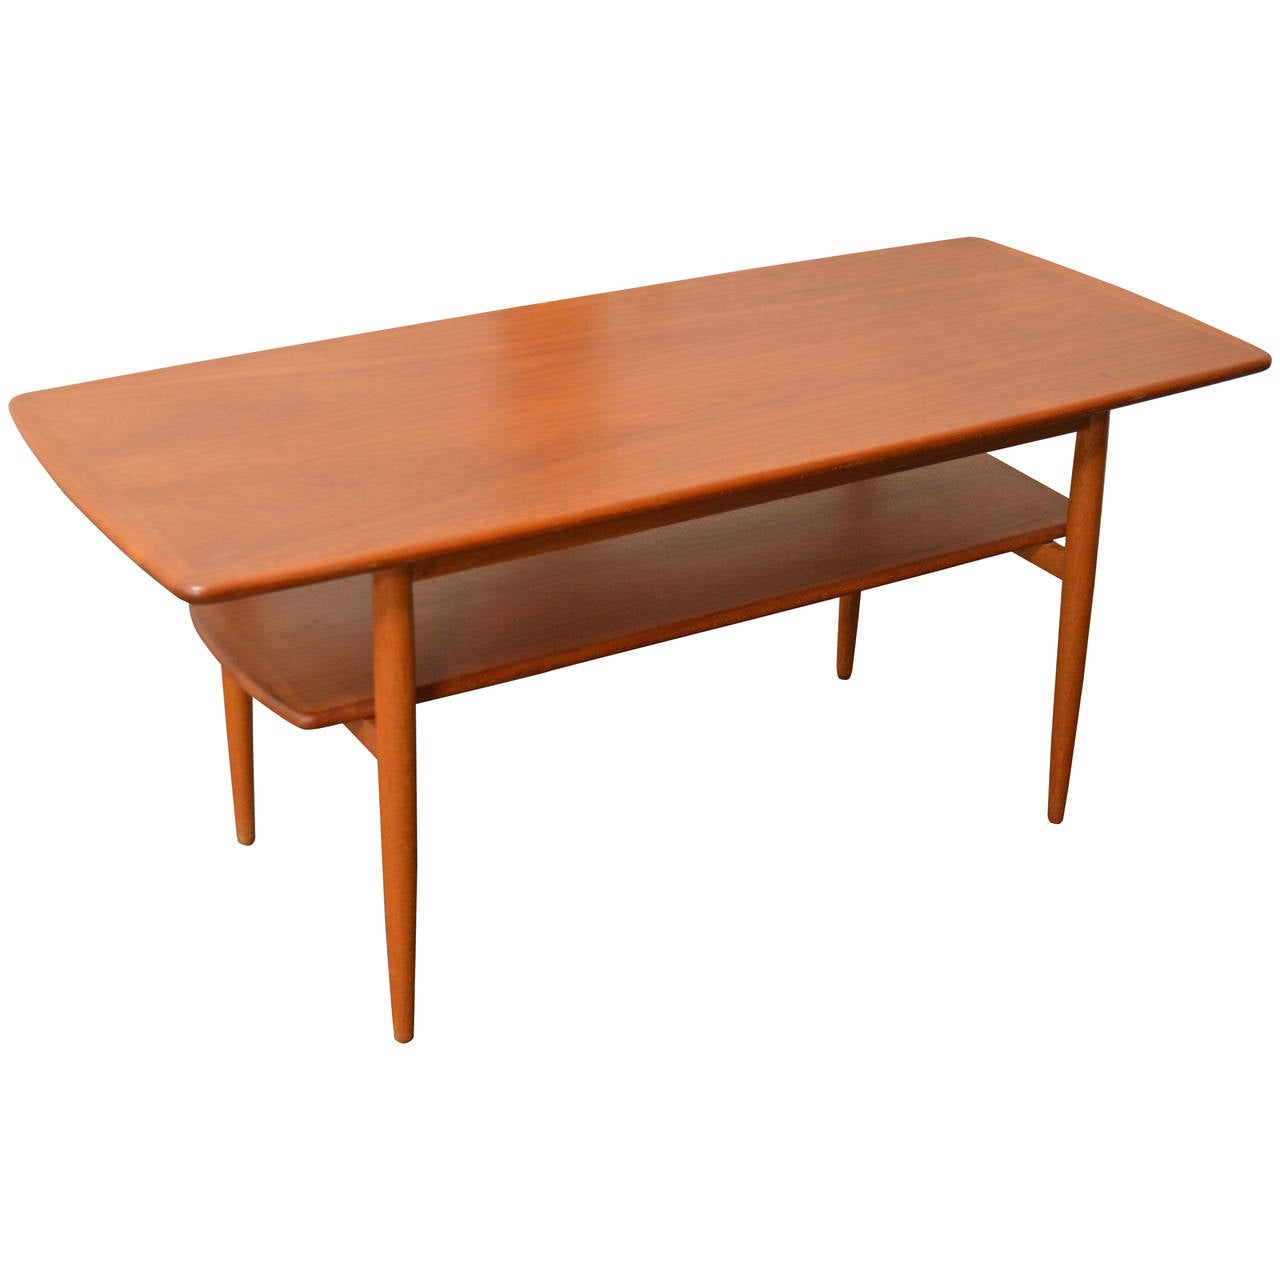 Mid century modern swedish teak coffee table with shelf for sale at 1stdibs Coffee table with shelf